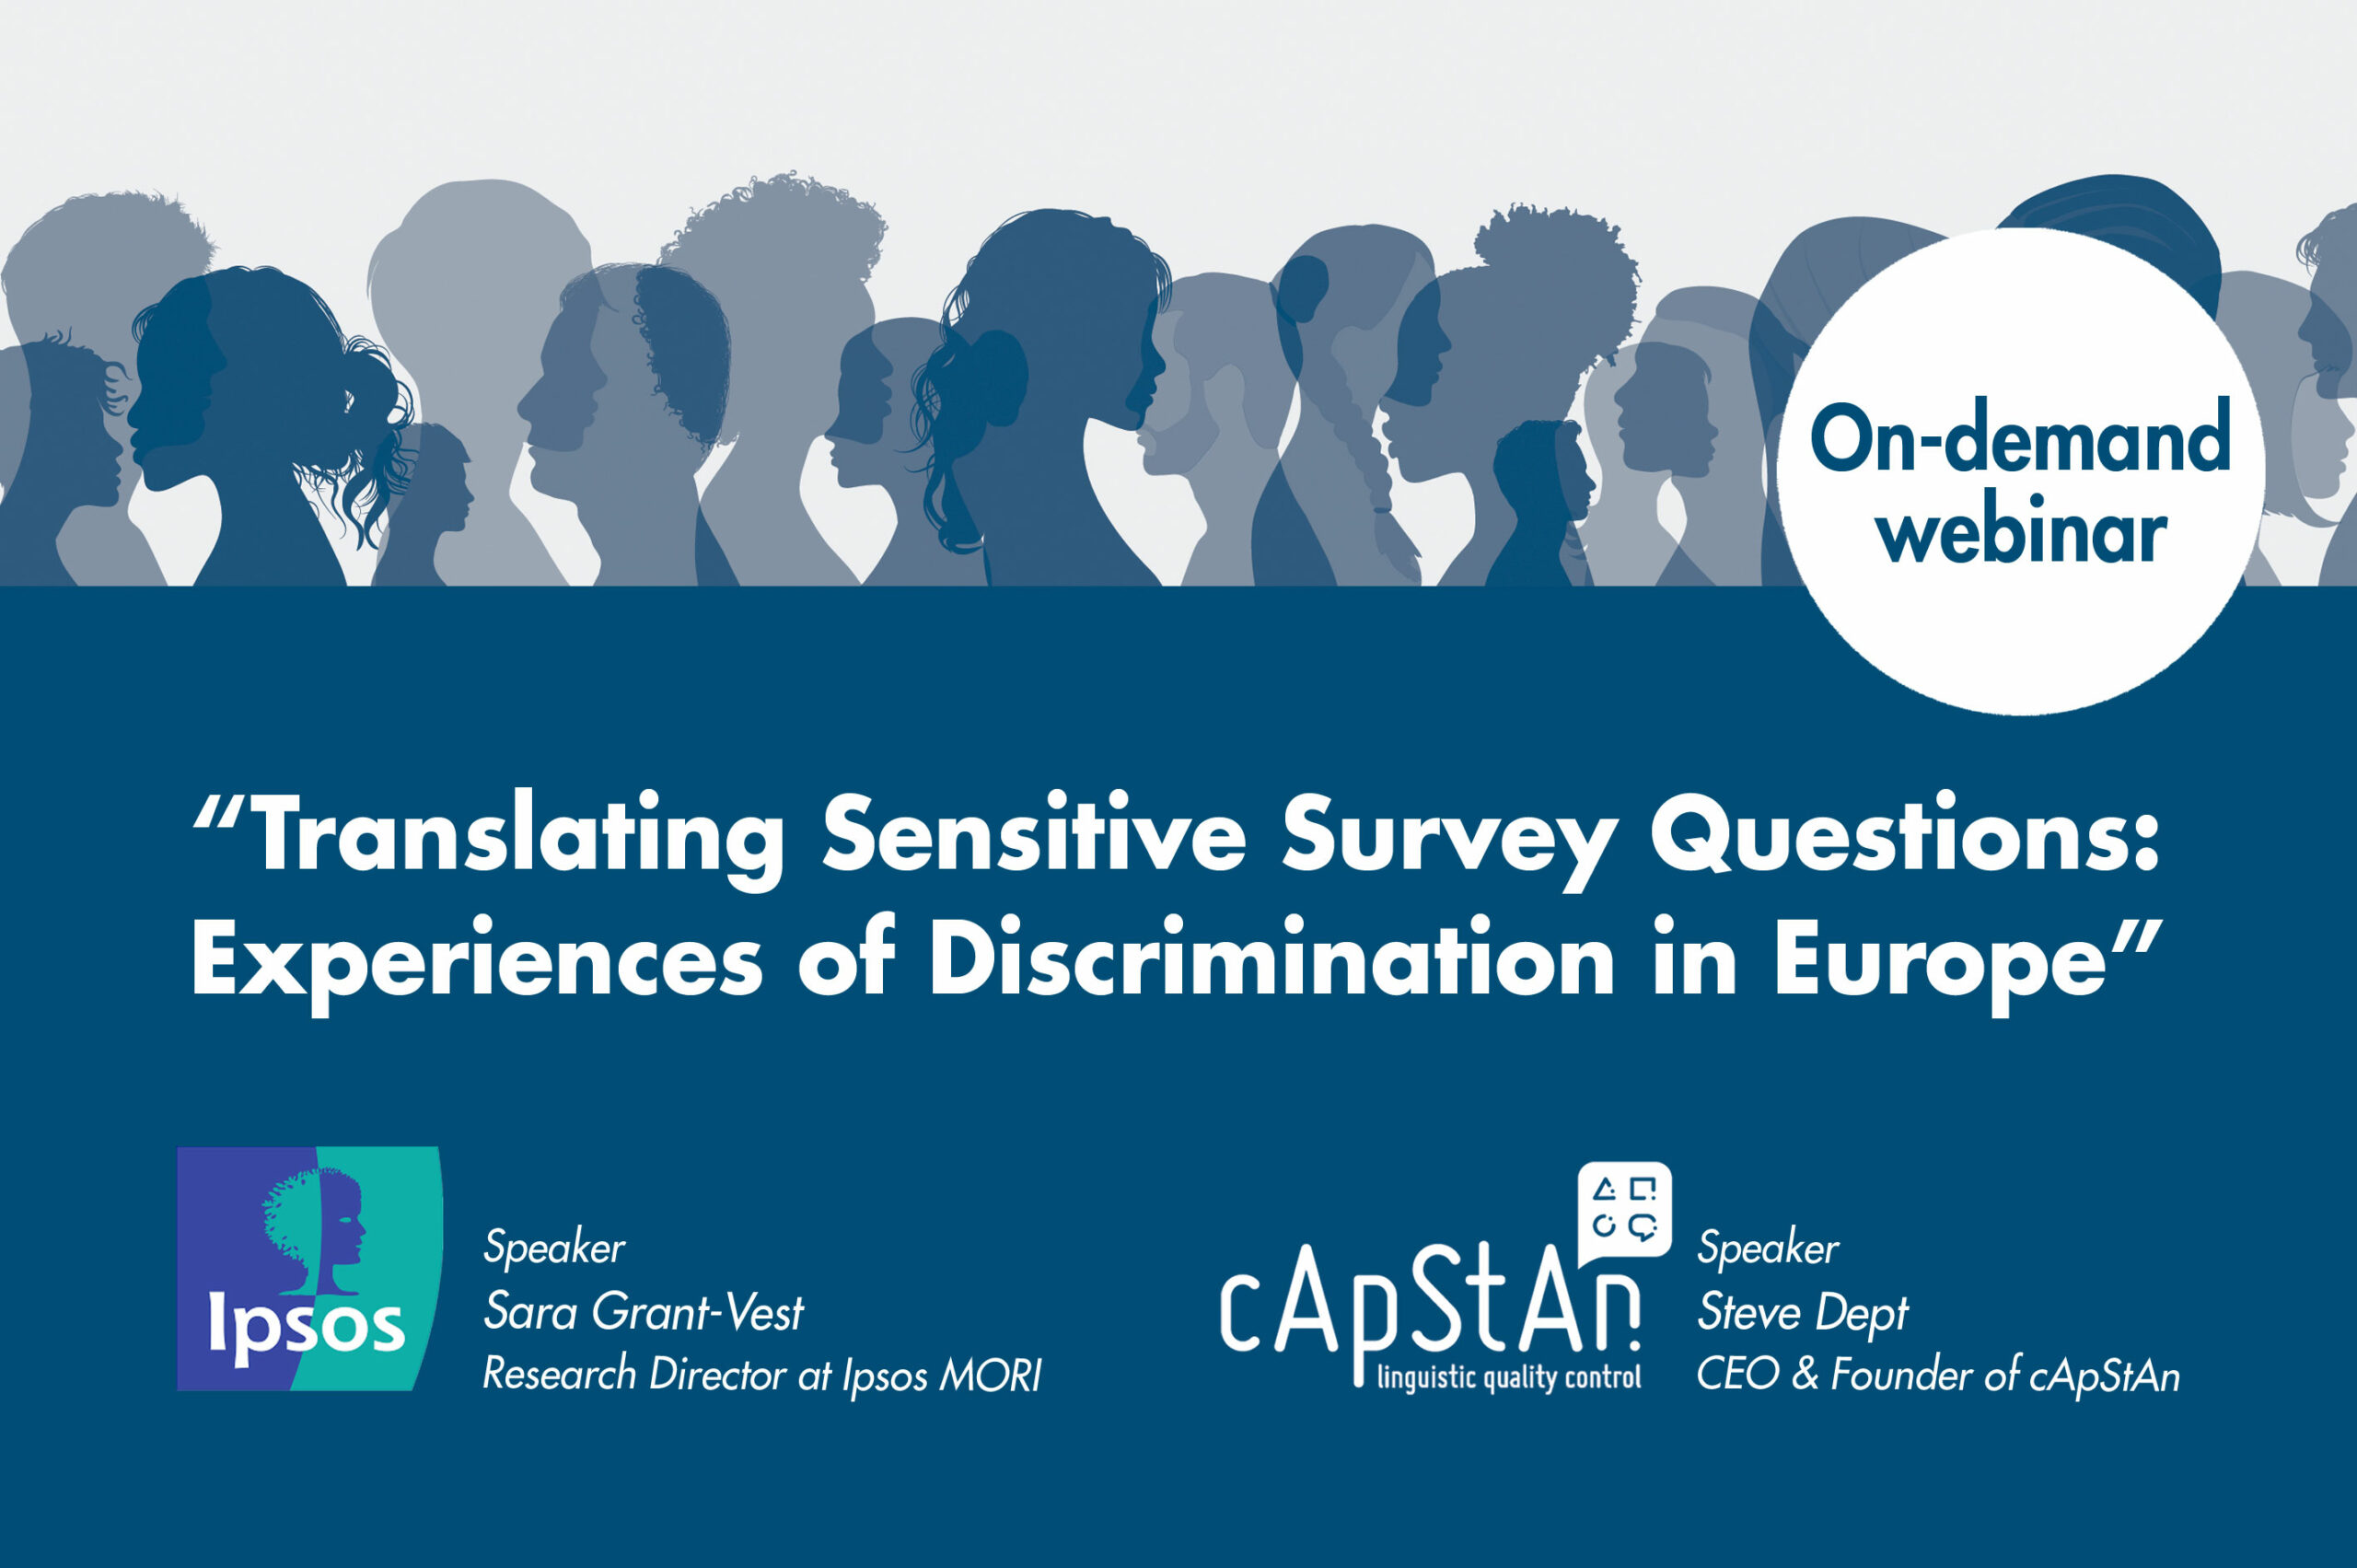 DETAILED TRANSCRIPT: TRANSLATING SENSITIVE SURVEY QUESTIONS – EXPERIENCES OF DISCRIMINATION IN EUROPE